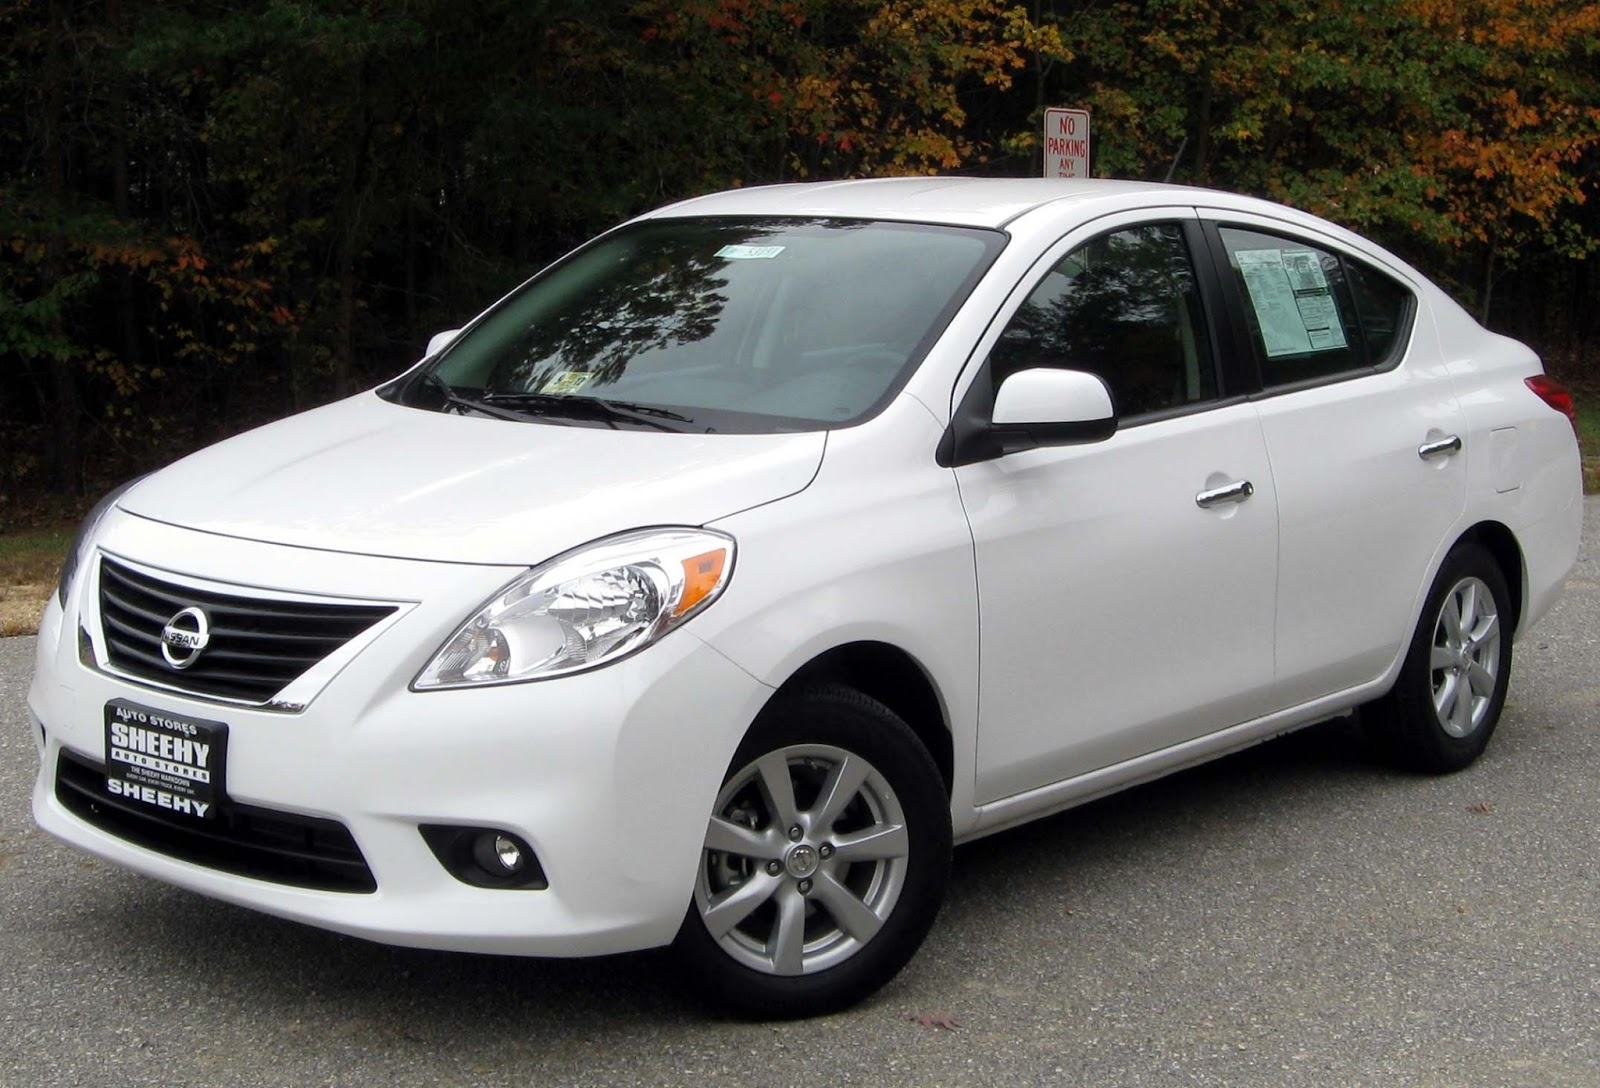 Most Wanted Cars: Nissan Versa 2013